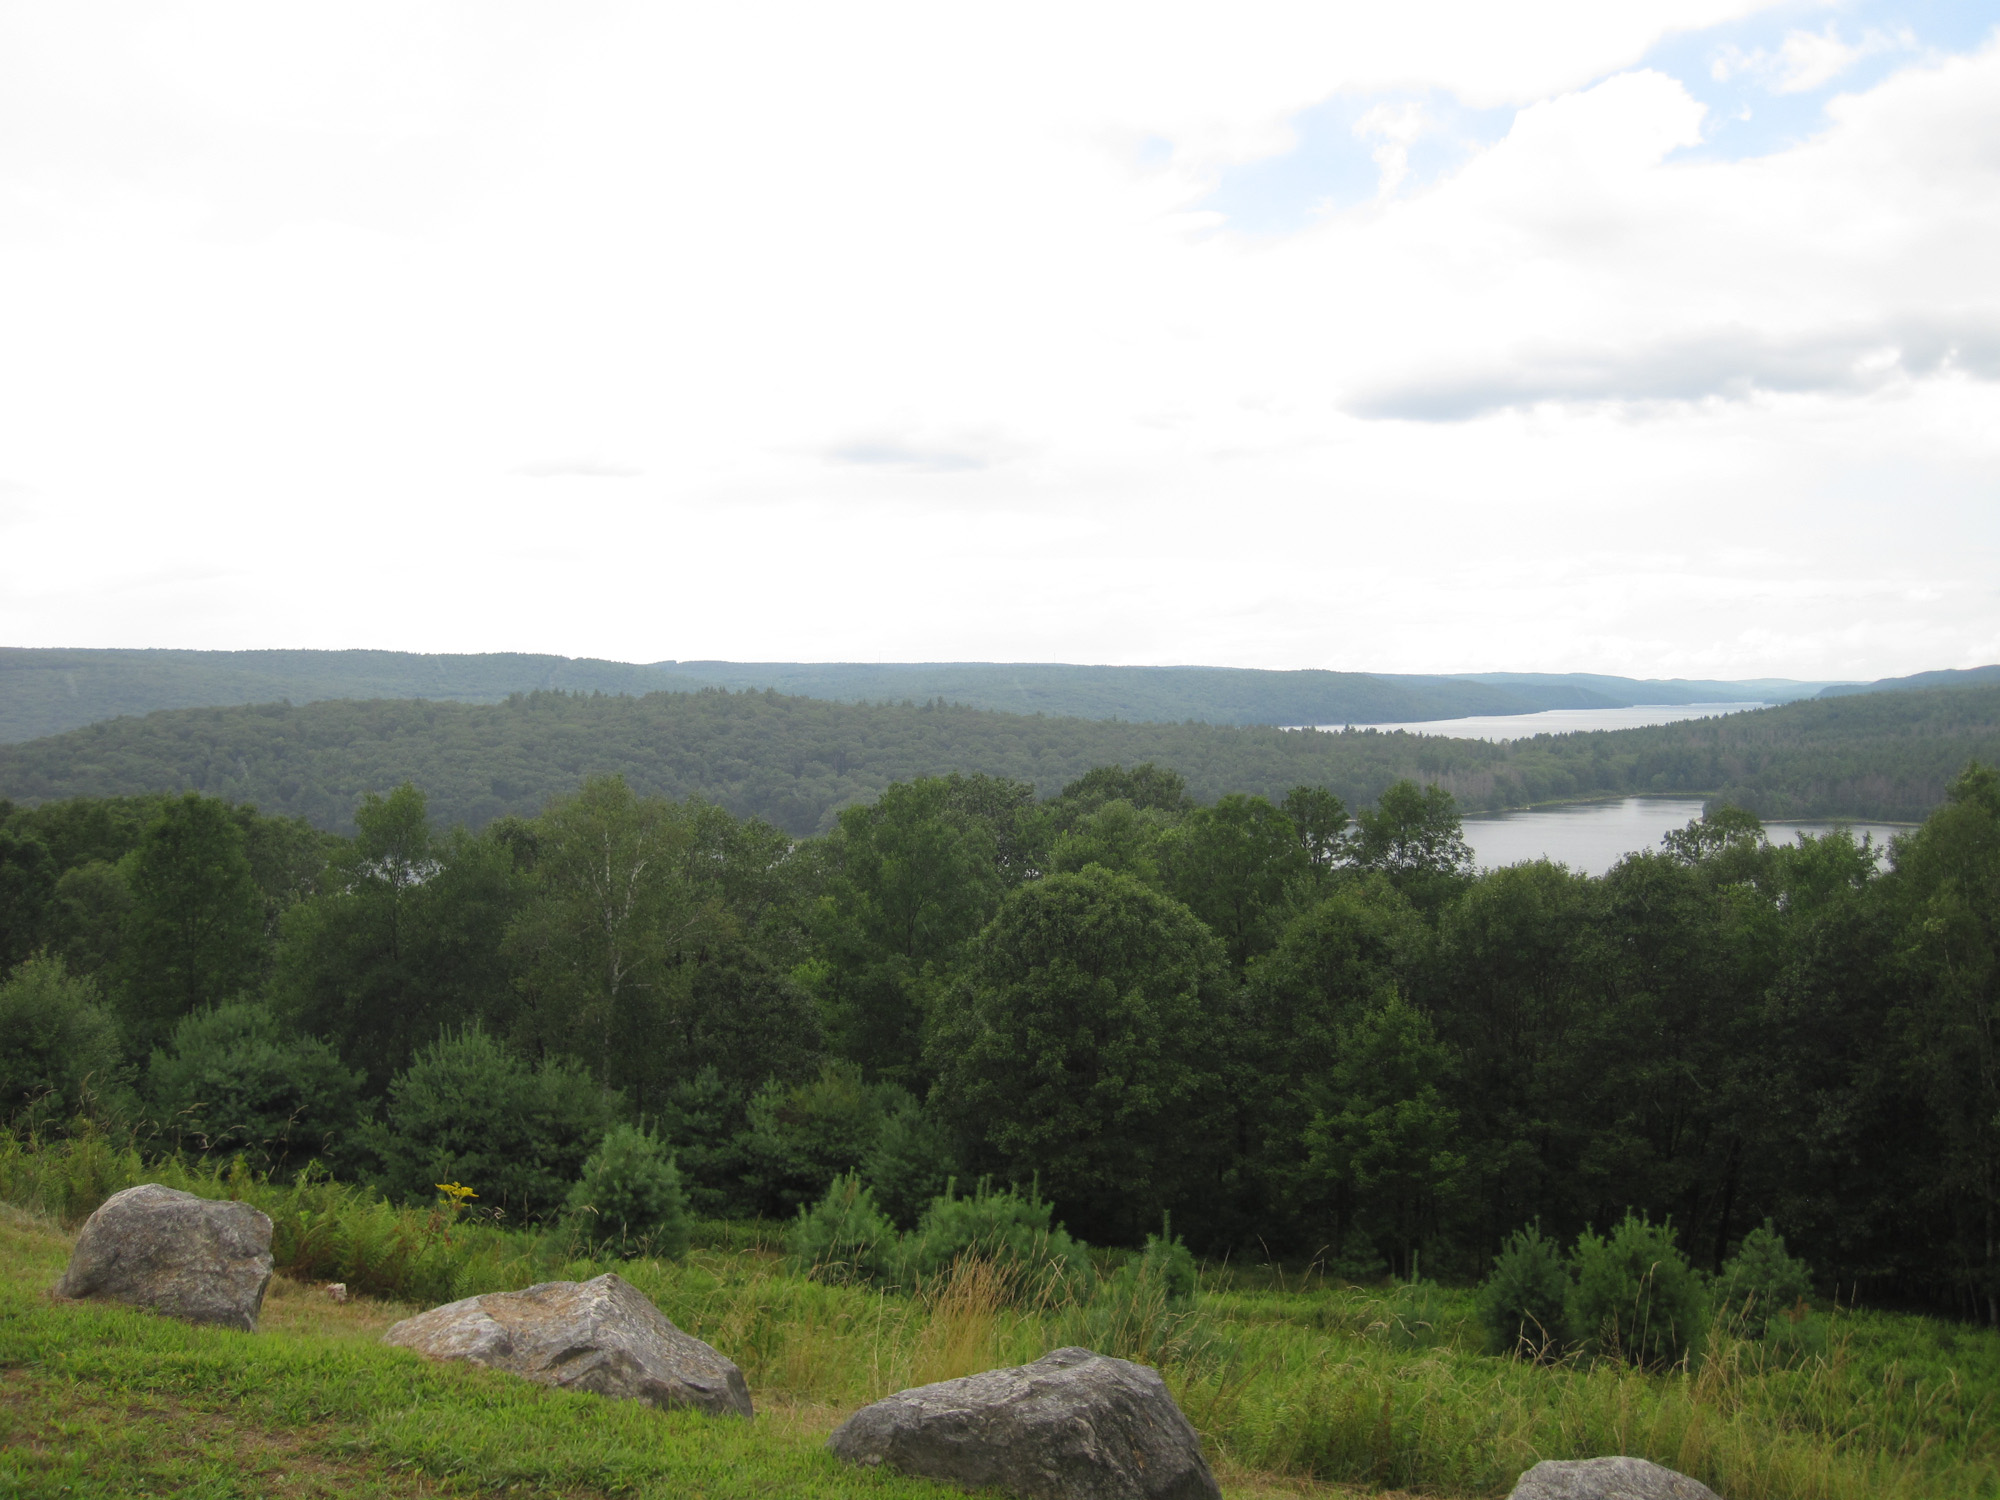 The damp view from Quabbin Hill